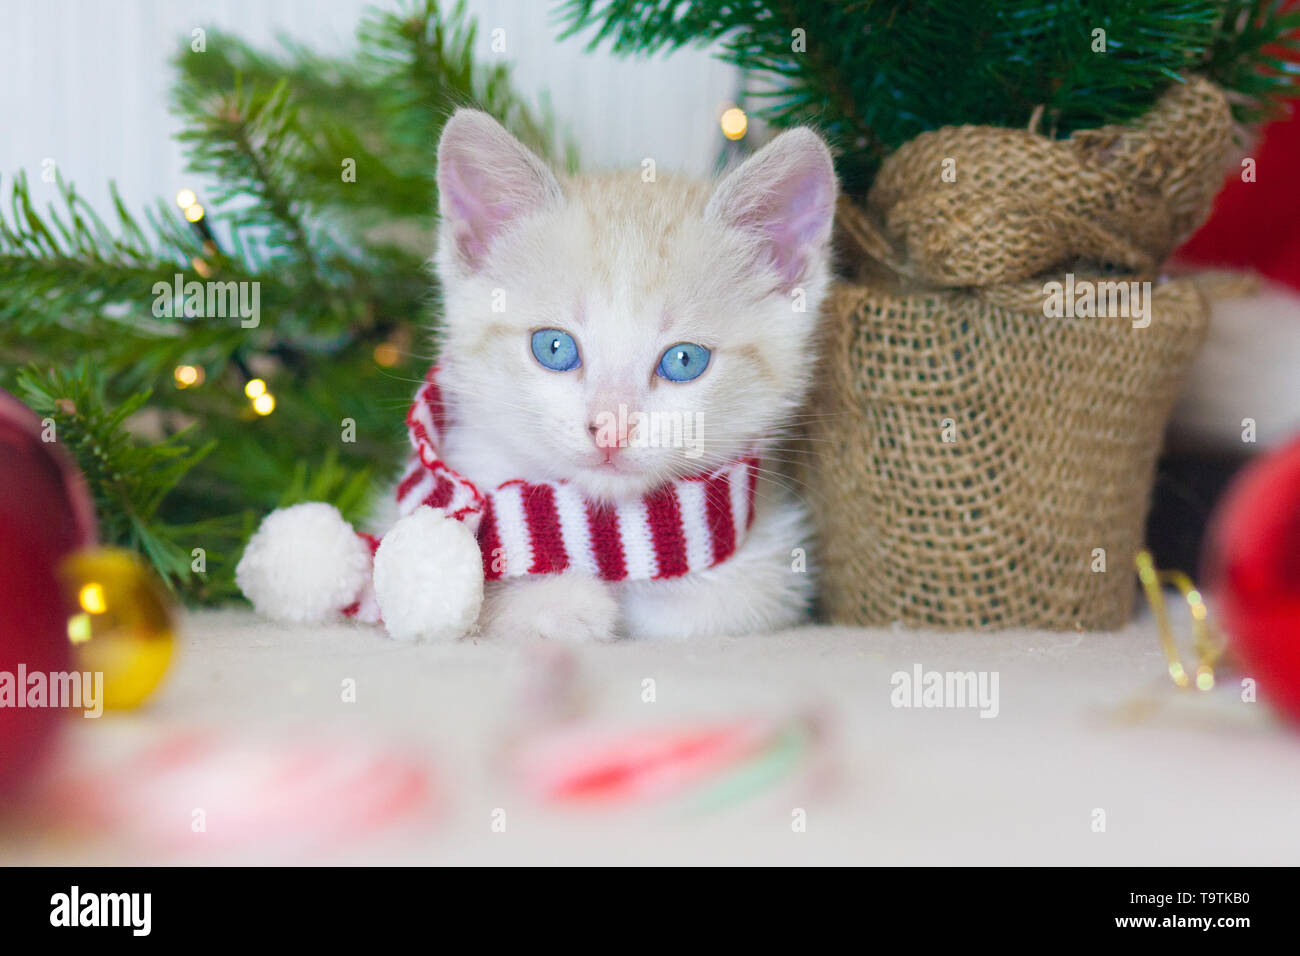 New year kitten. Cat in a scarf on the background of the tree. Cat symbol of the new year. Animal with Christmas decorations. - Stock Image